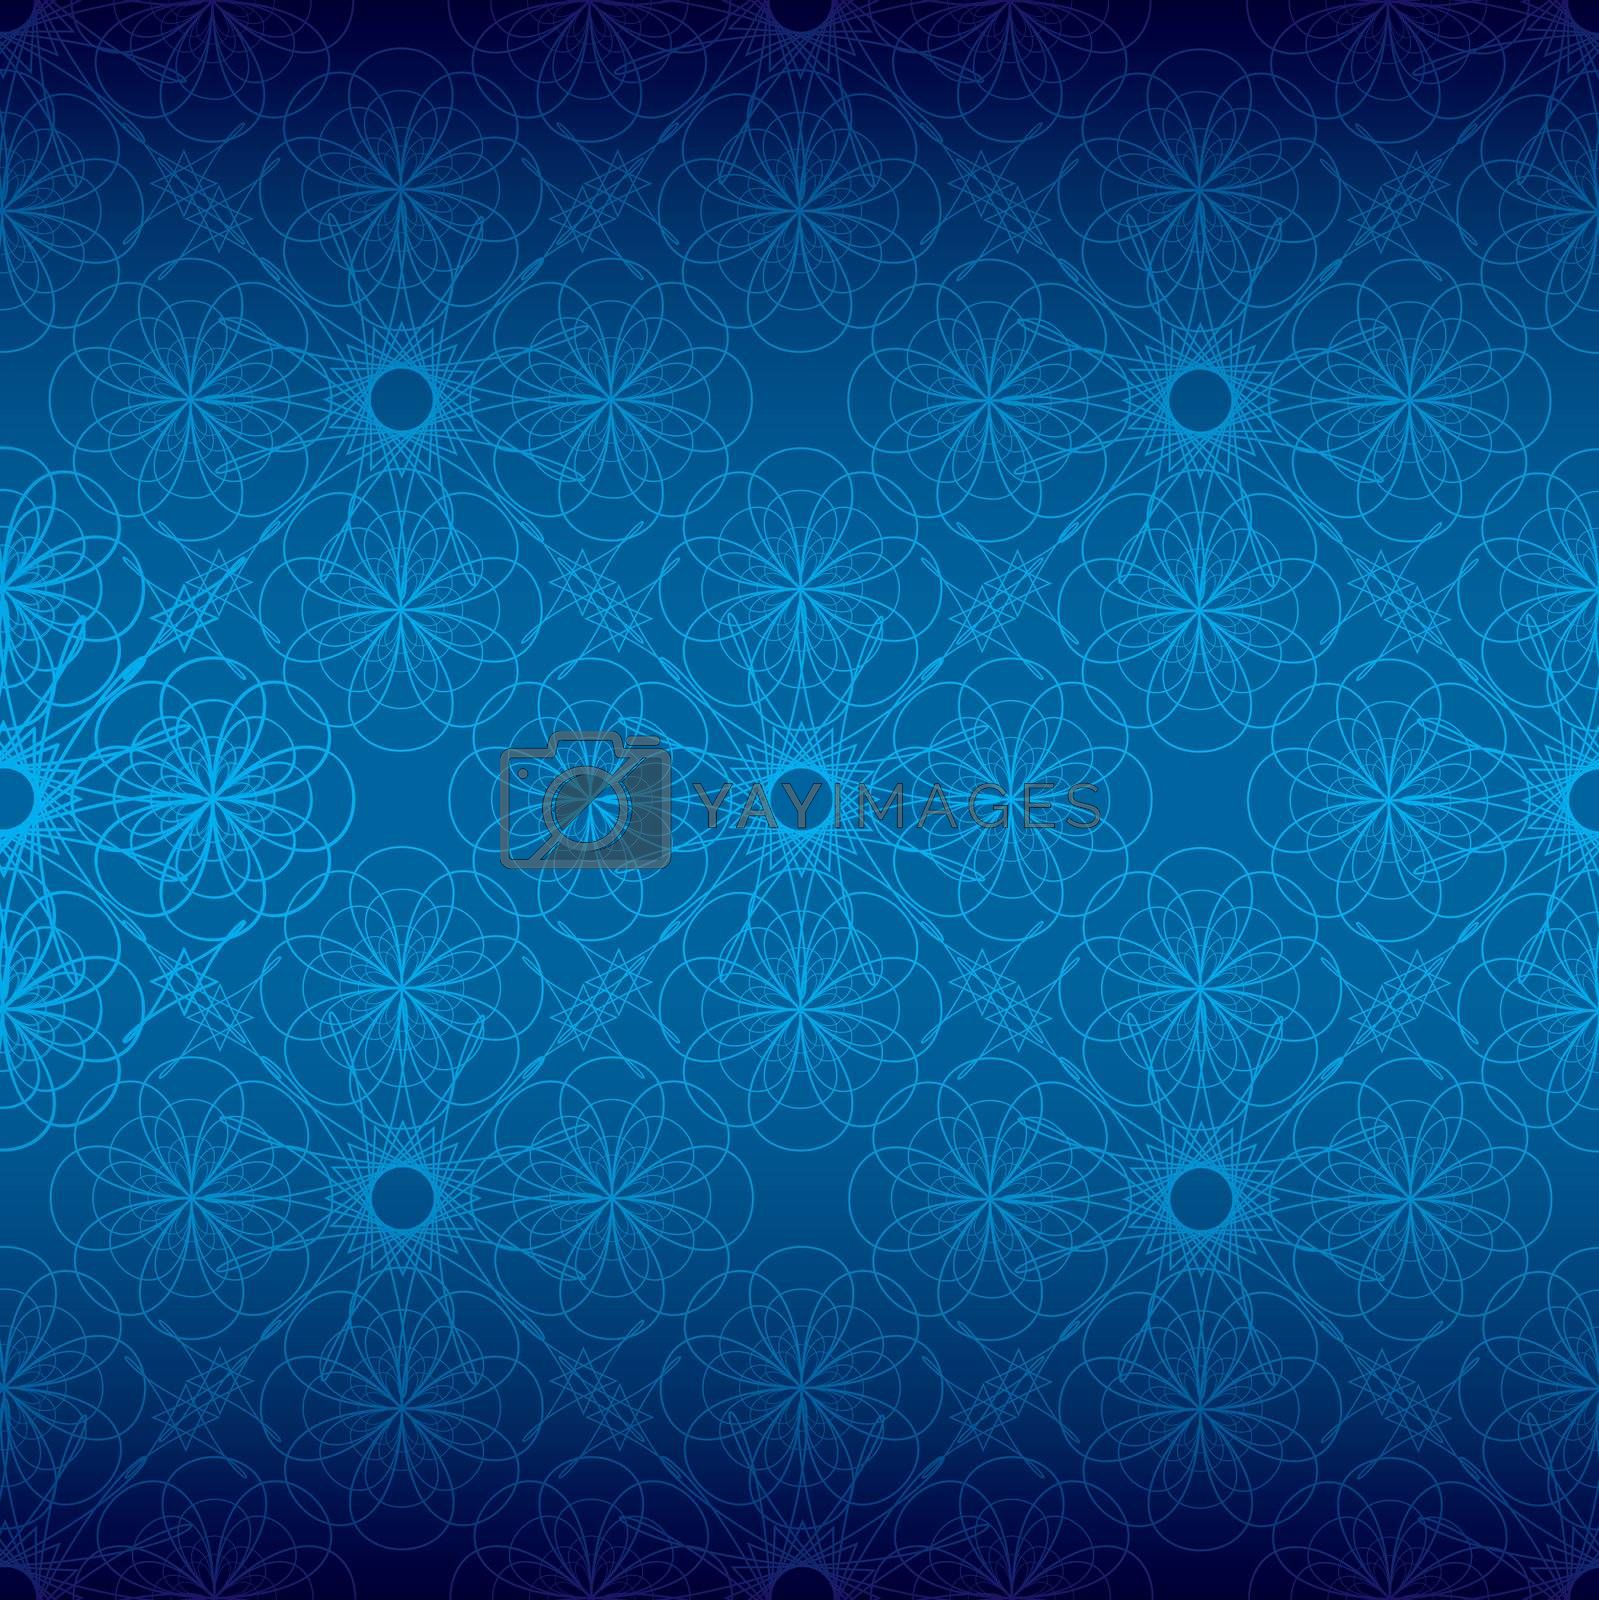 shades of different blues with seamless floral spiral background pattern